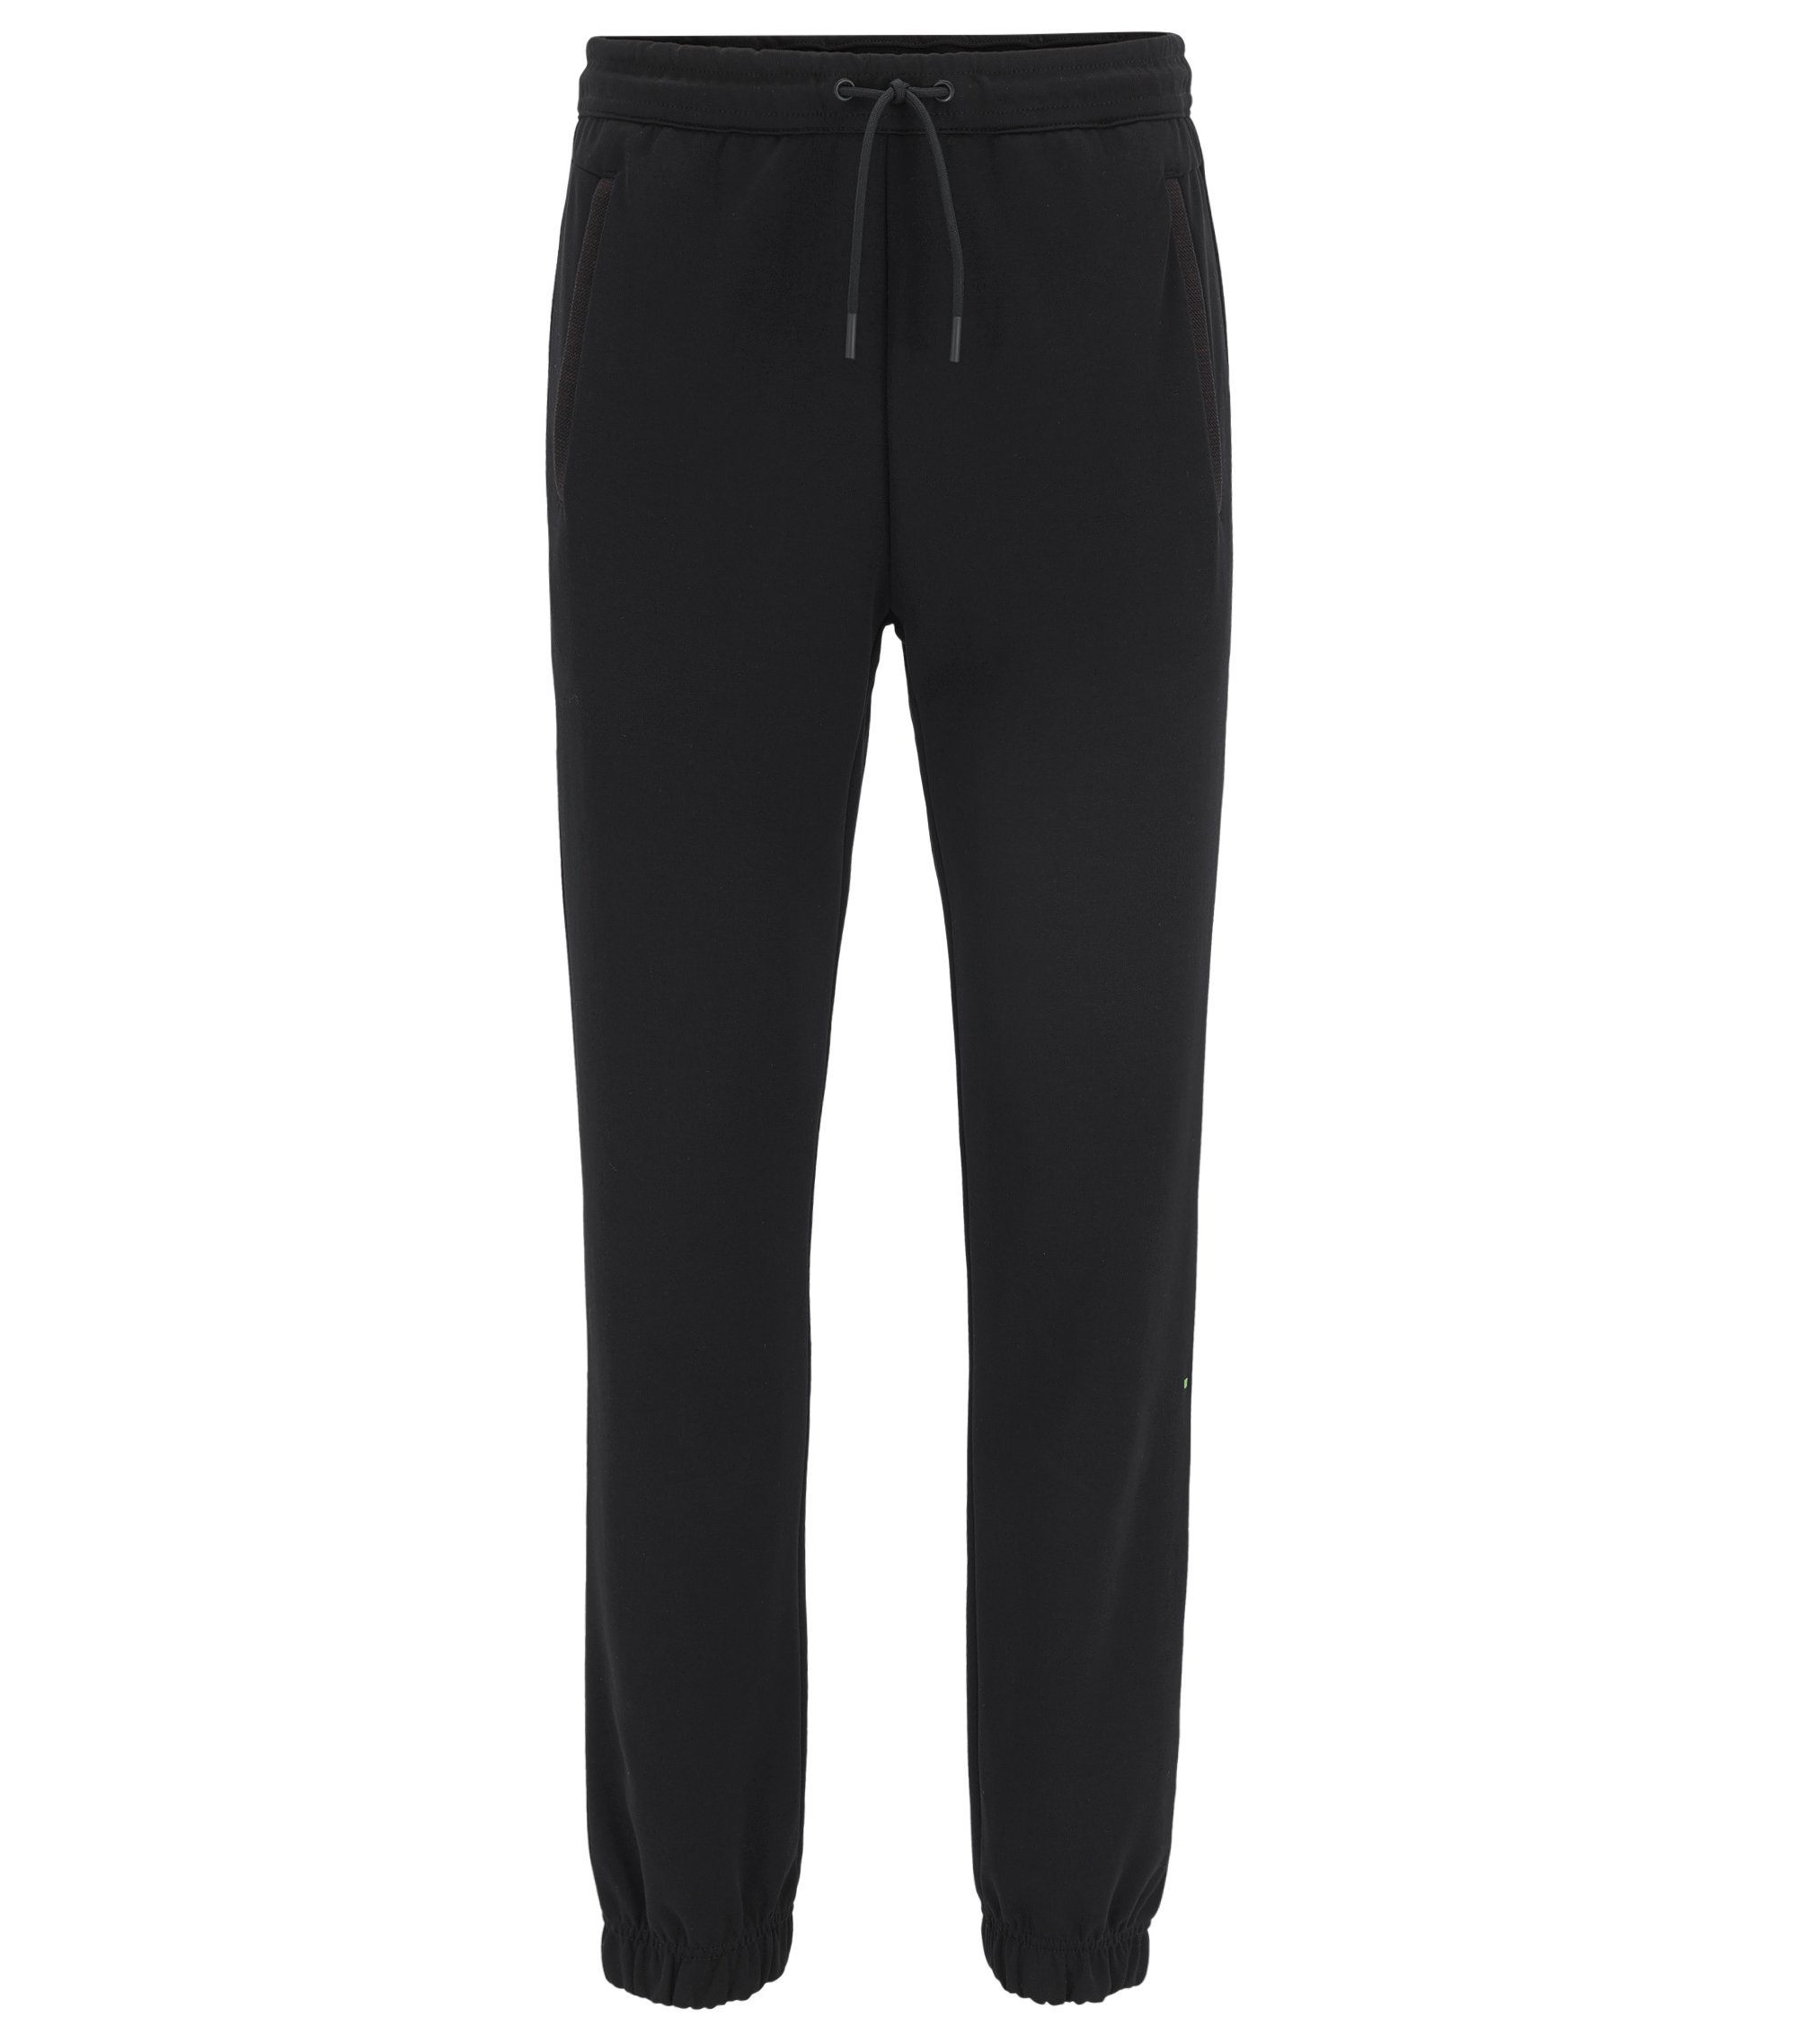 Pantalon de jogging Regular Fit en coton mélangé, Noir